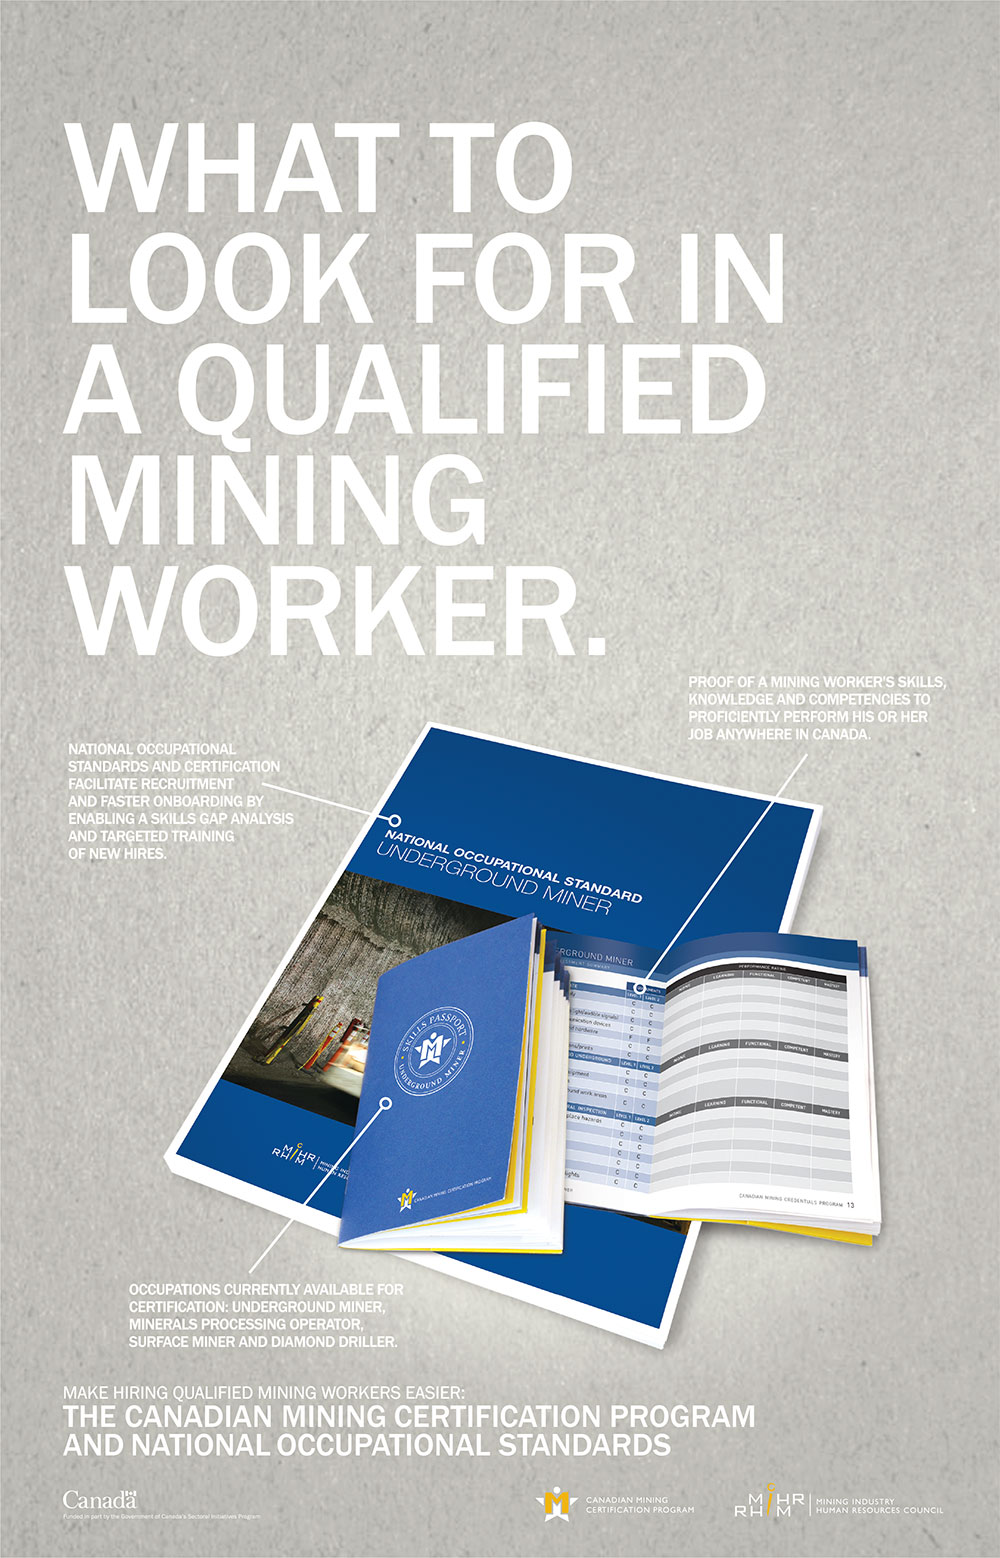 Mining industry human resources council mihr clever samurai we help them brand and promote a wide range of programs some of which include the renowned canadian mining certification program labour market research 1betcityfo Images